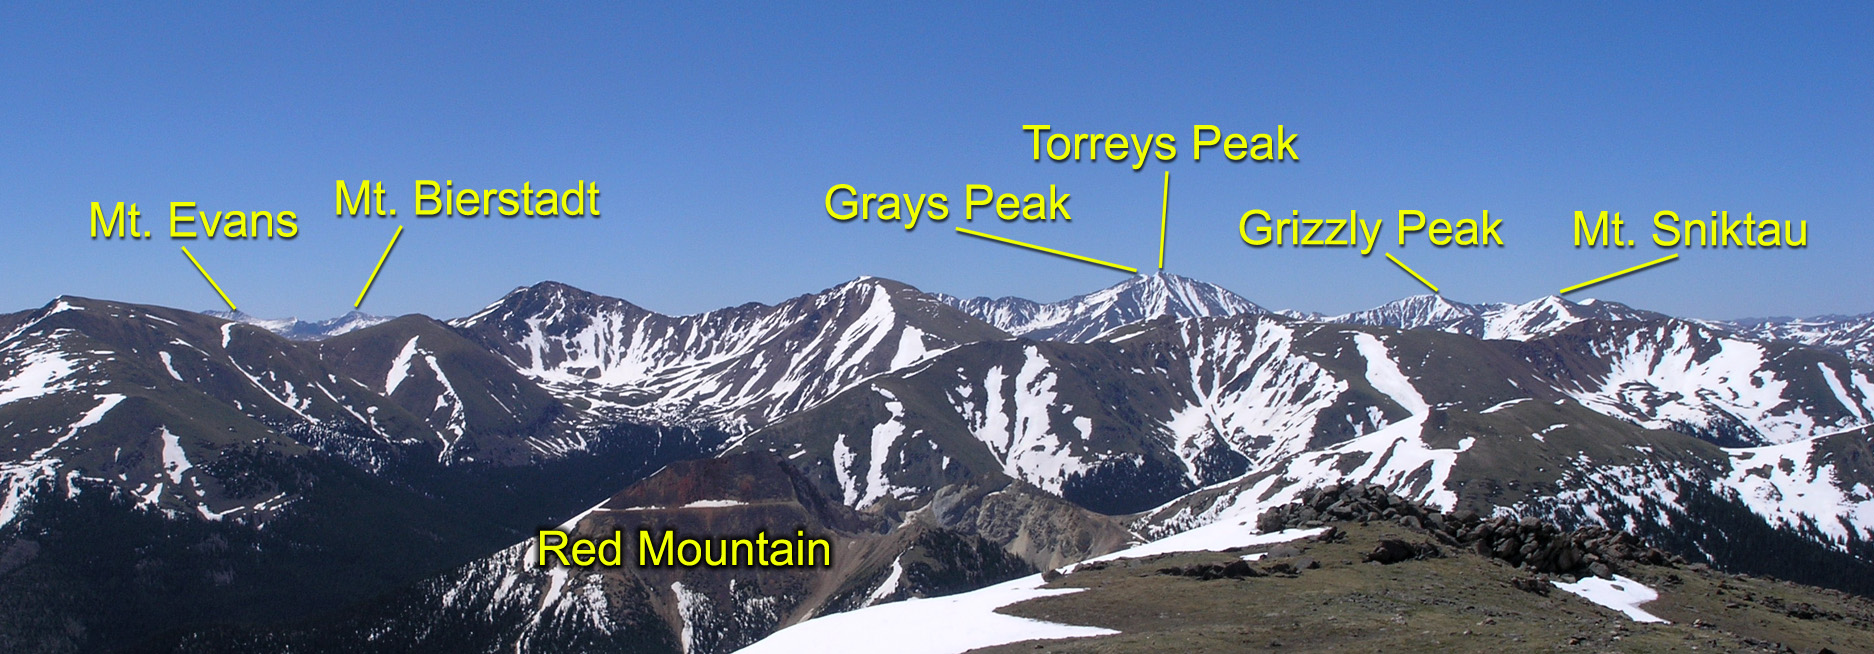 A distant view of Greys, Torreys, Grizzly, and Sniktau Mountain